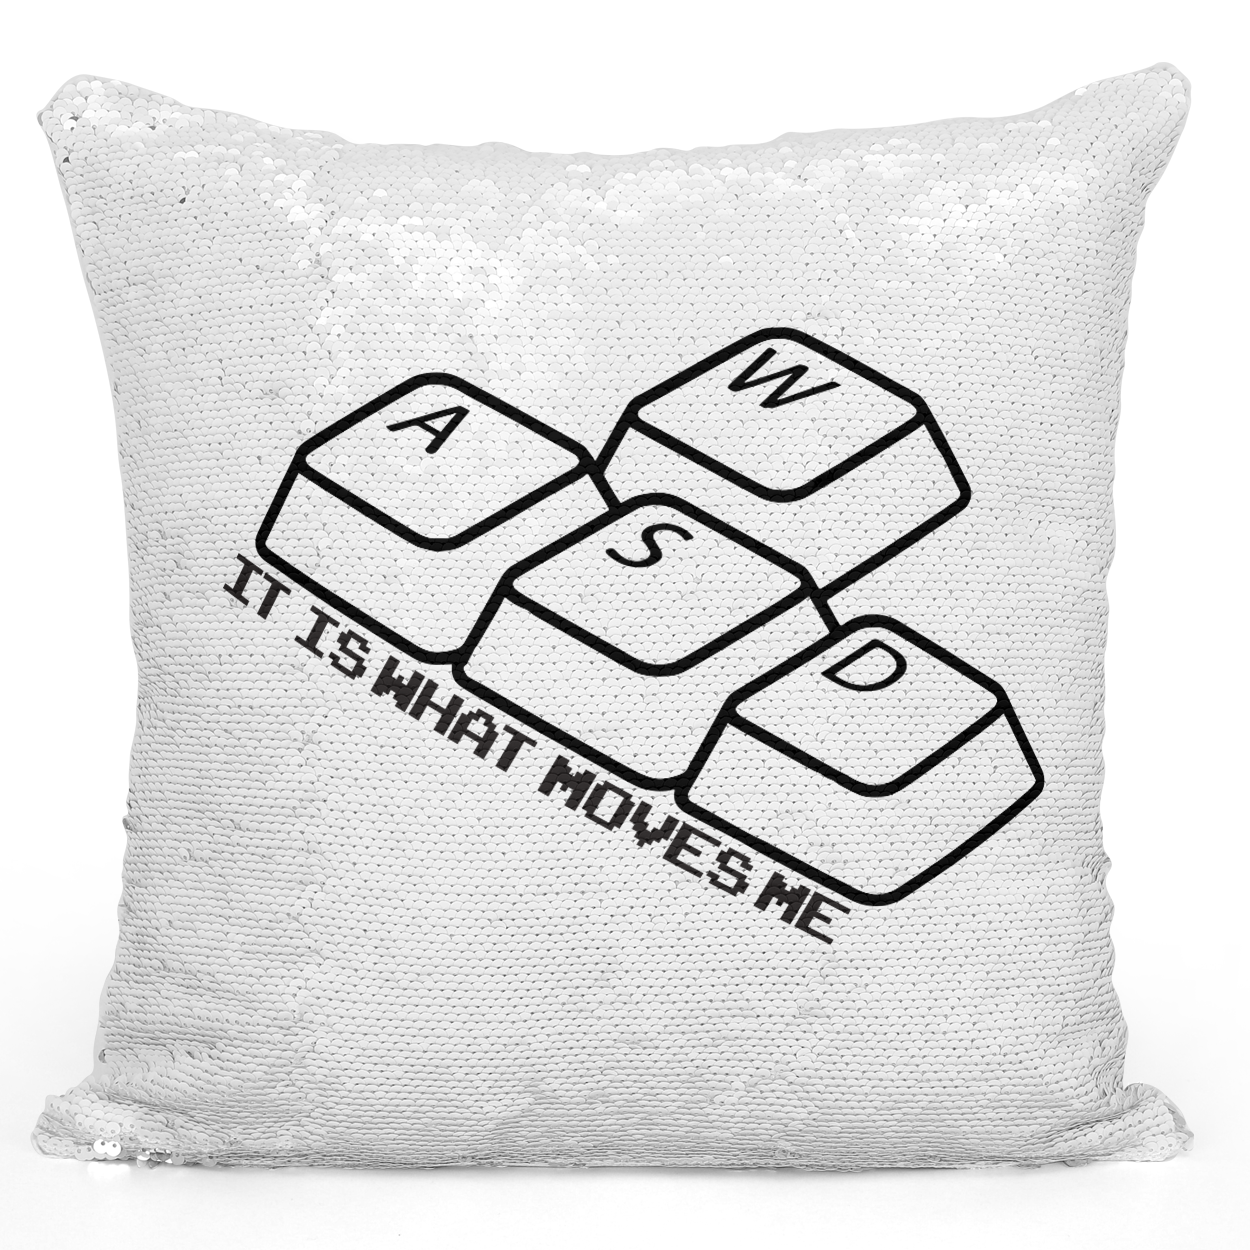 Sequin Pillow Magic Mermaid Throw Pillow Wasd Keyboard Keys It Is What Moves Me Funny Computer Nerds Pillow - Pure White Printed 16 x 16 inch Square Home Decor Couch Pillow Loud Universe